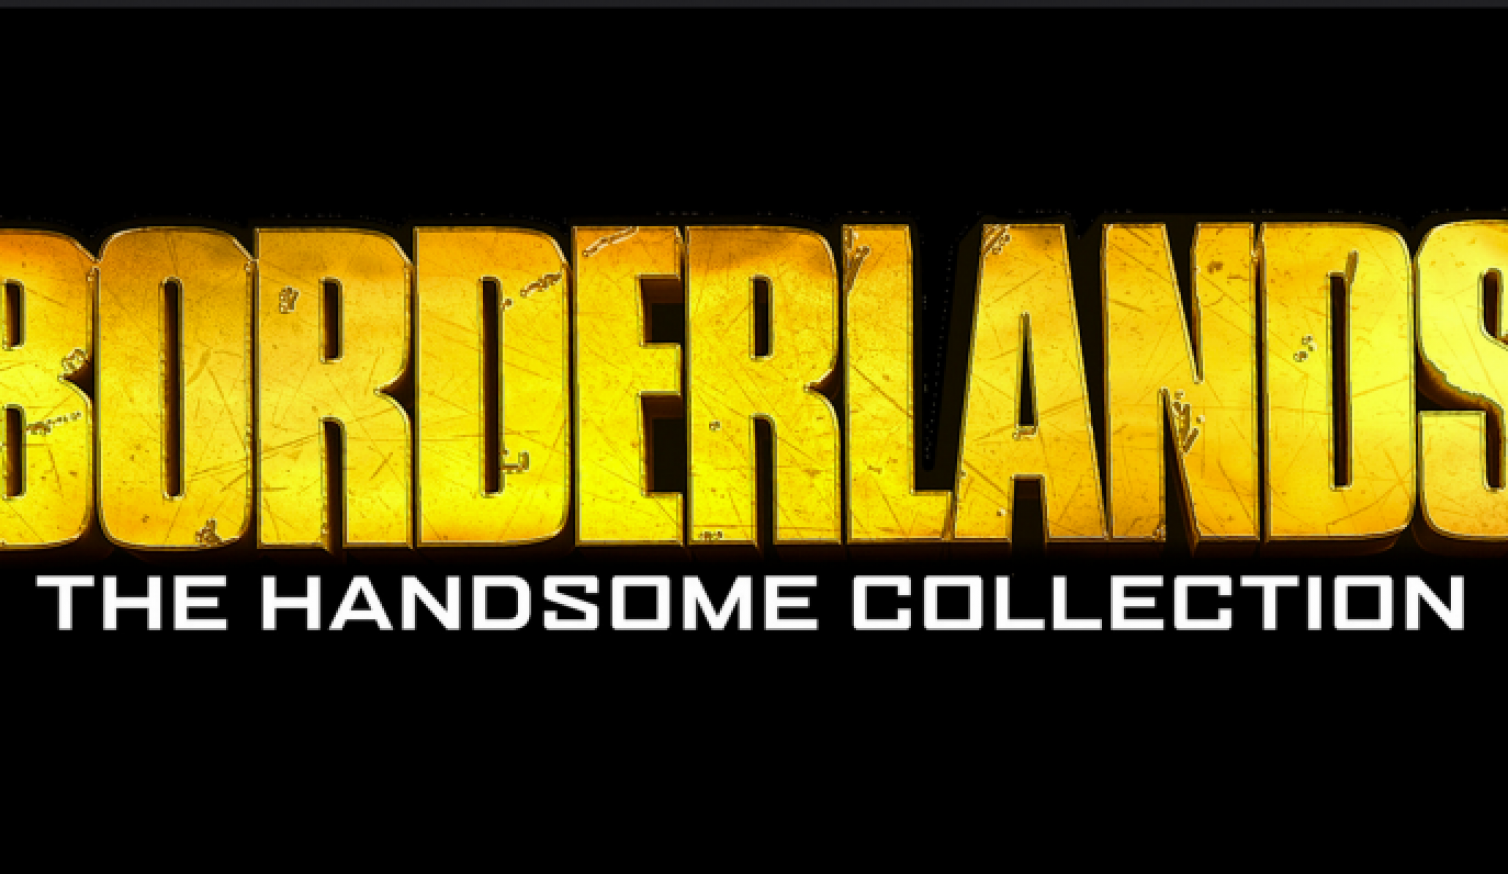 Borderlands on PS4/XBone, an FPS dream come true!